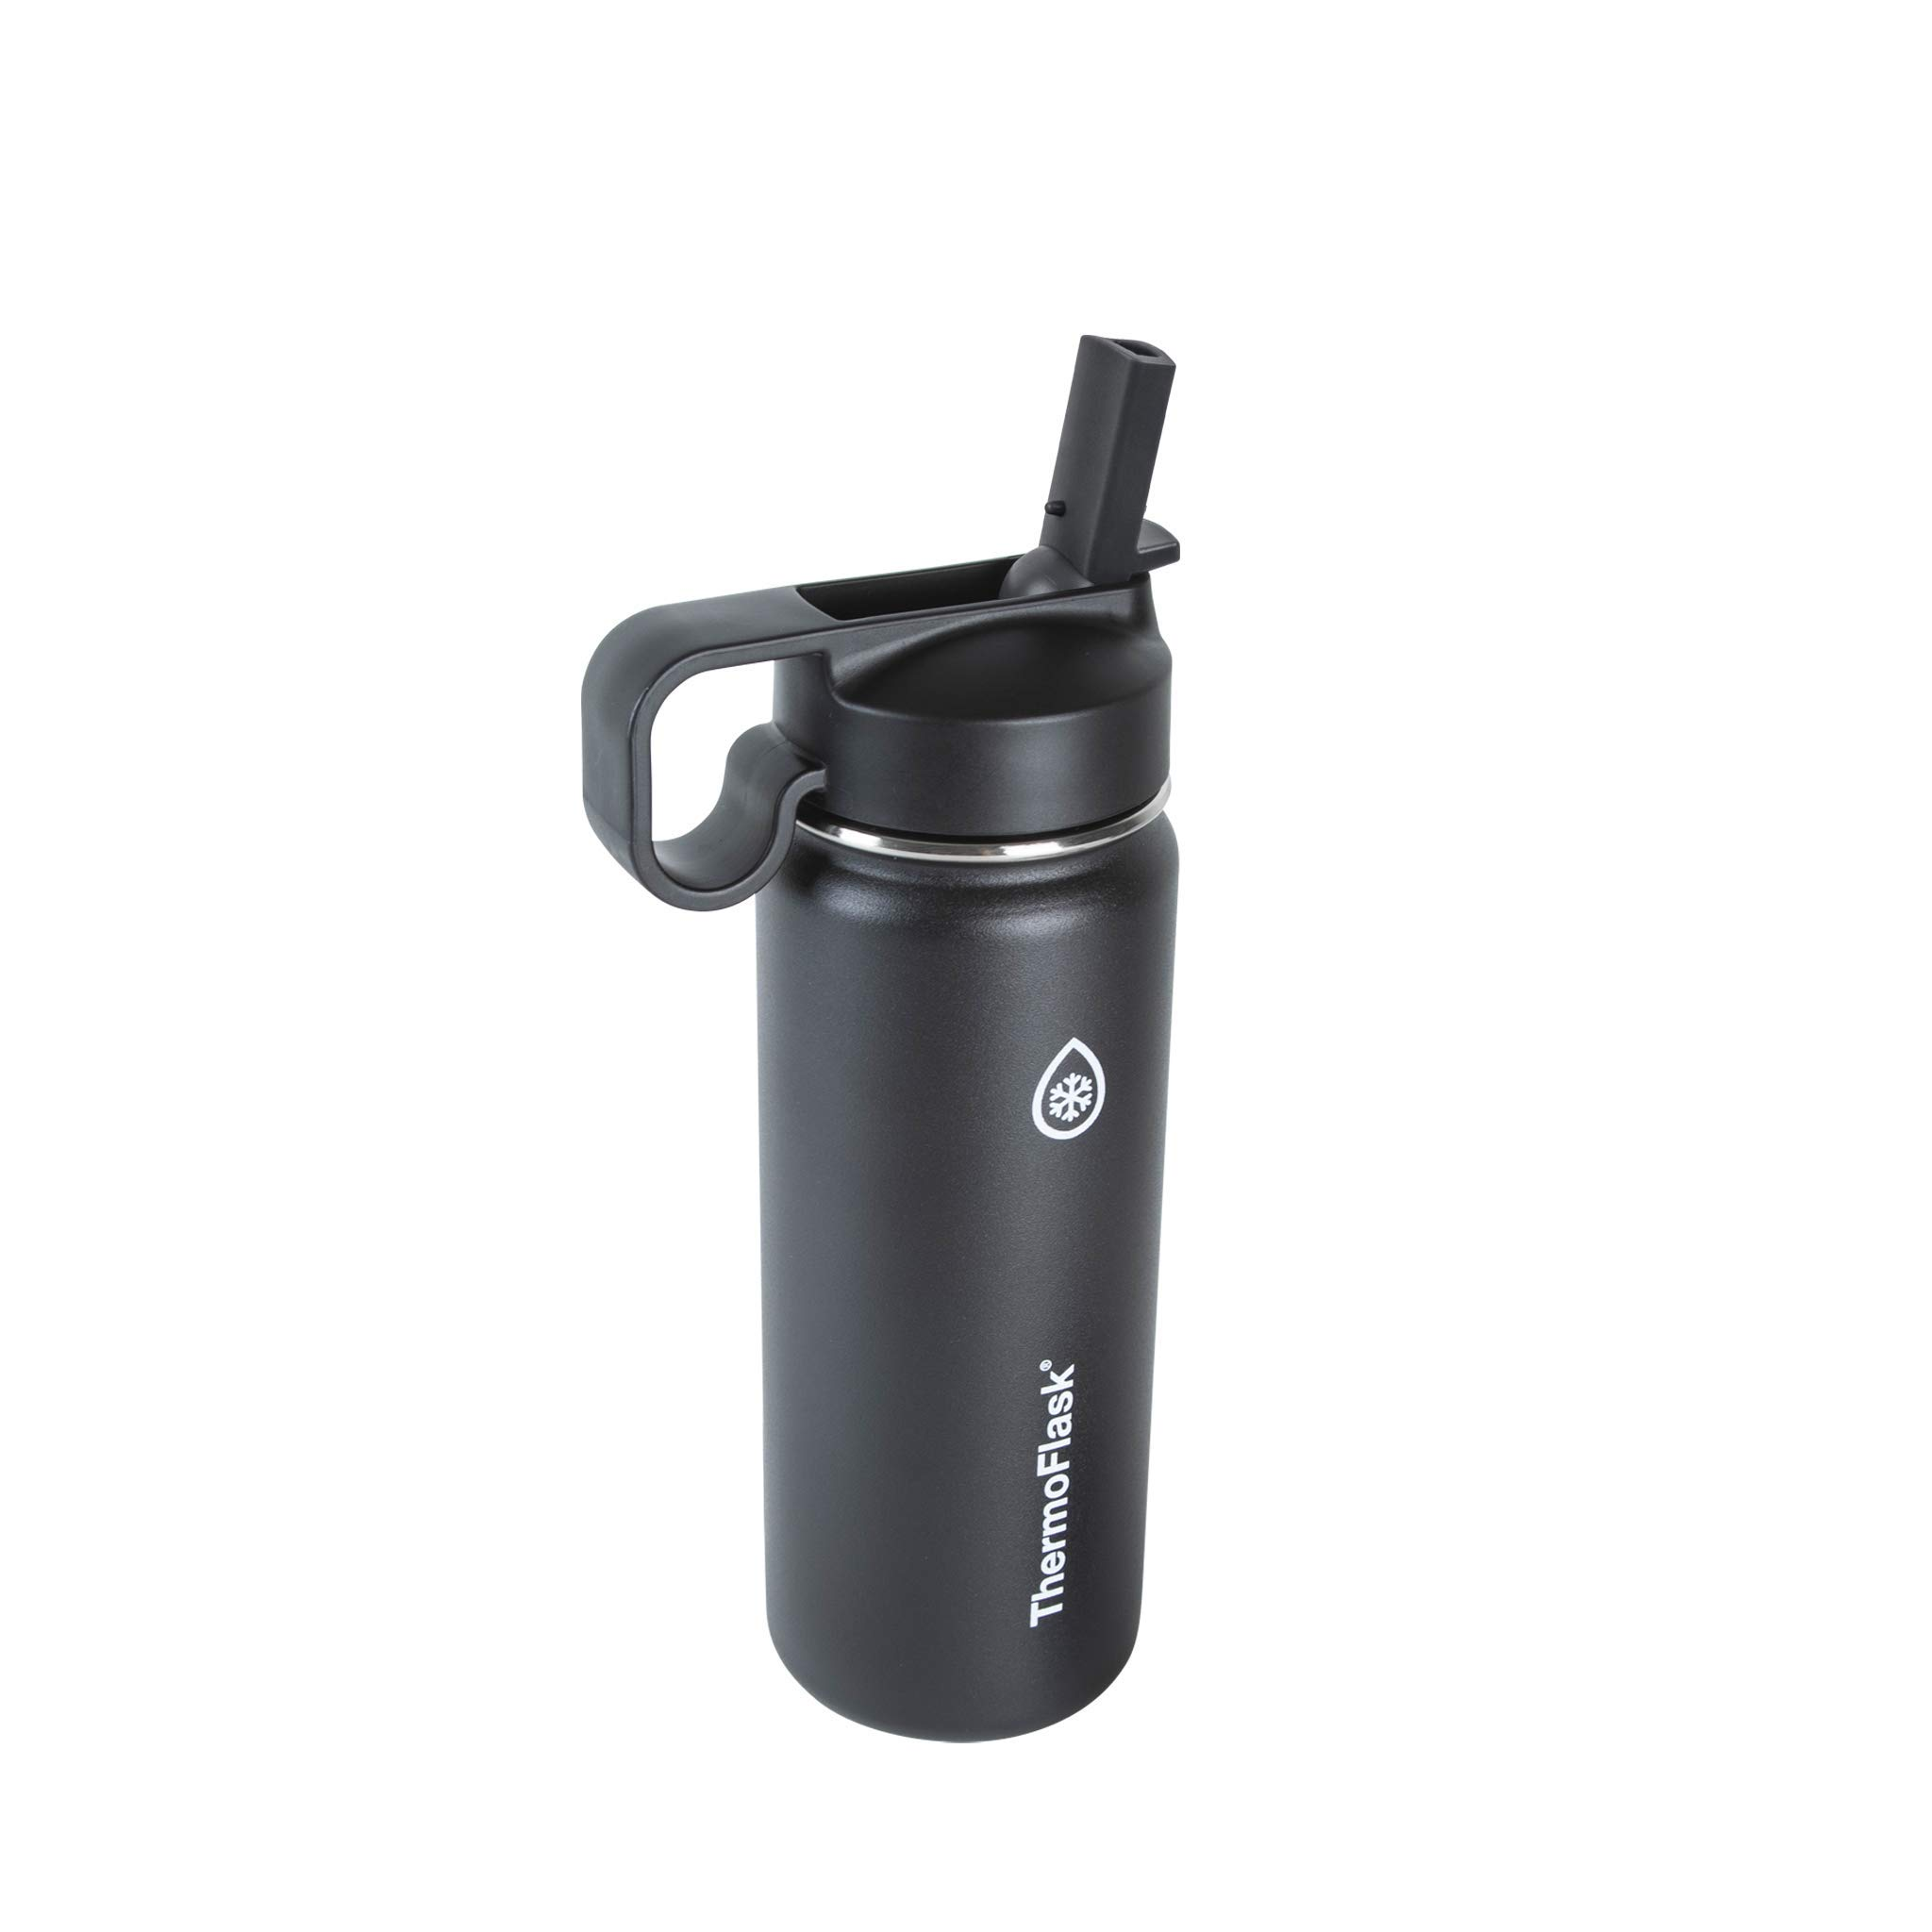 Cressi Flask Stainless Steel Sport Thermal Bottle